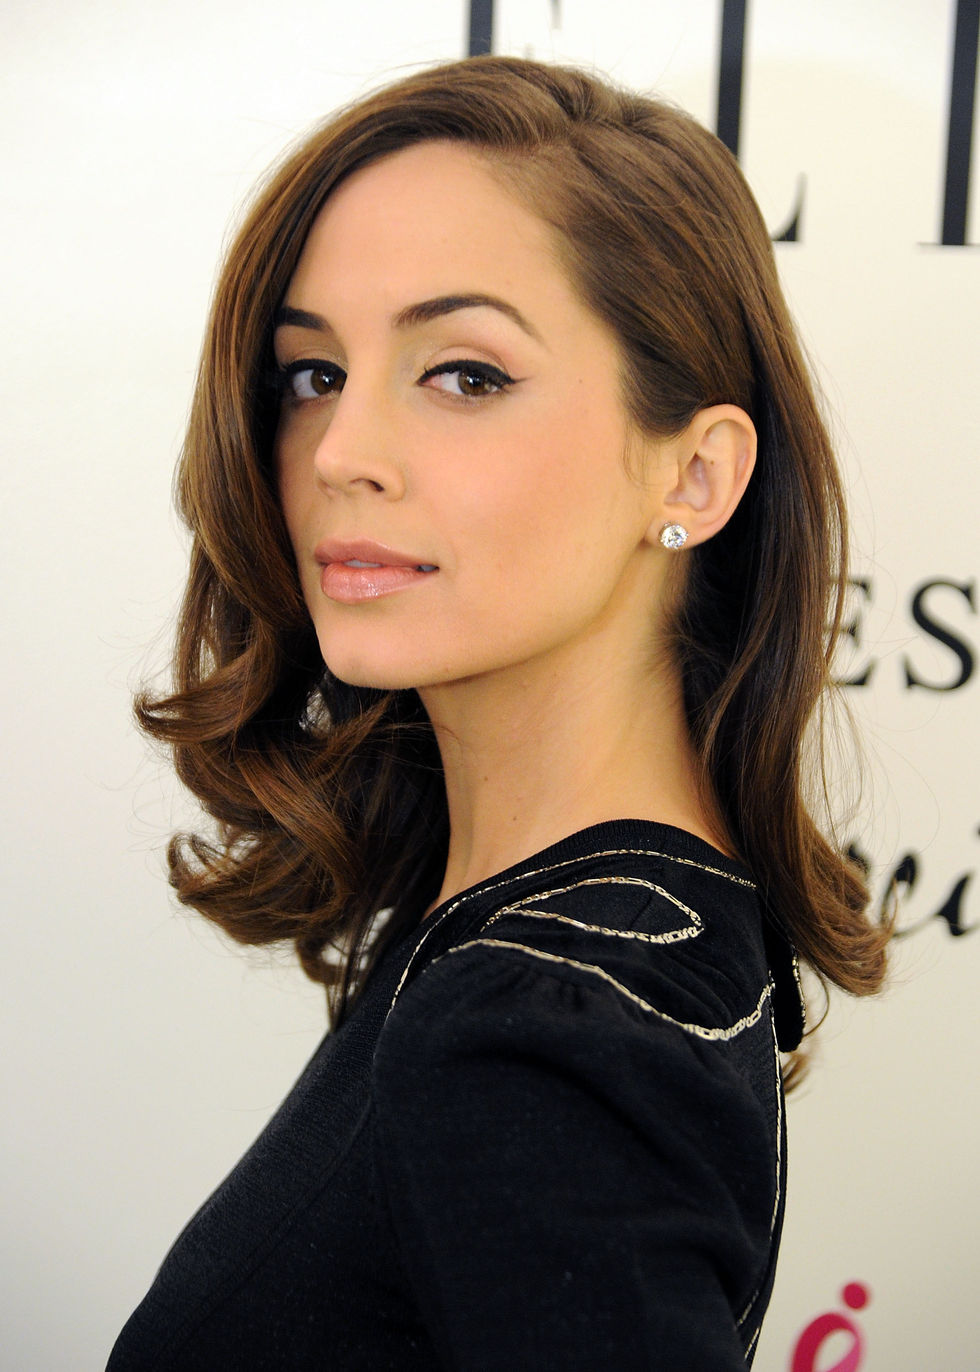 eliza-dushku-guess-by-marciano-and-elle-event-in-new-york-01